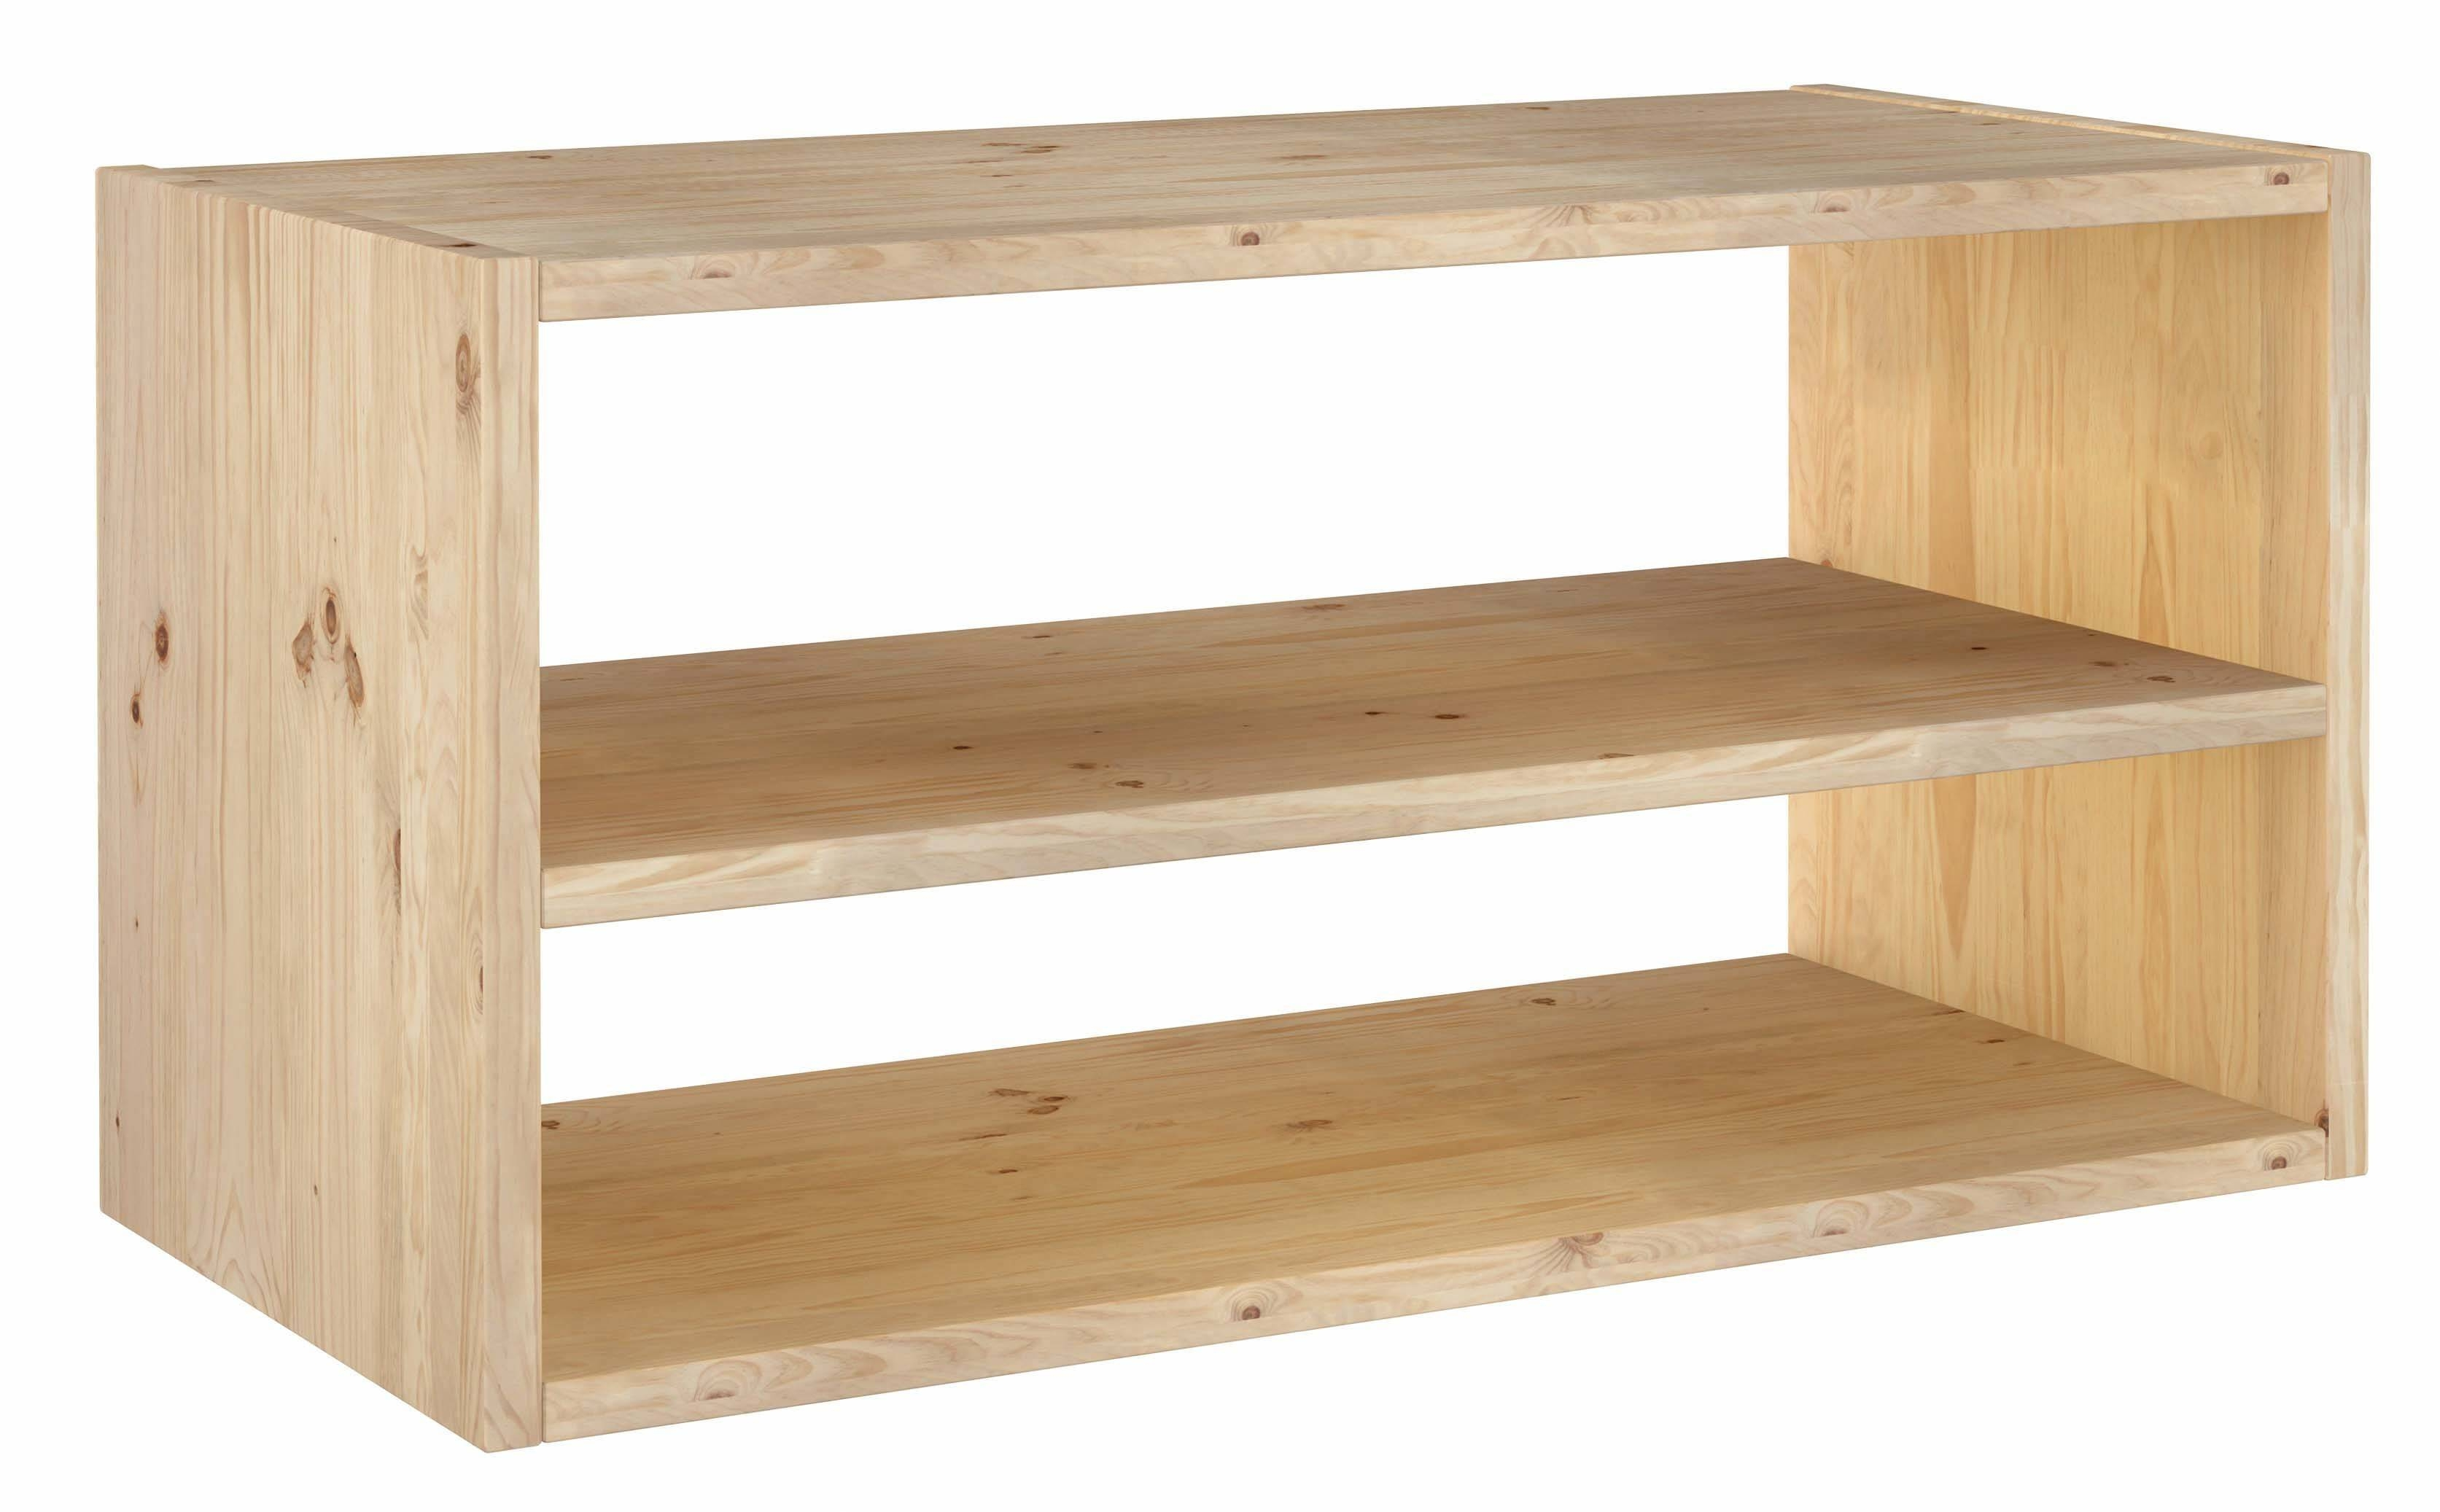 Pine Tv Stand: The Pros And Cons Of Different Tv Stands in Pine Tv Cabinets (Image 11 of 15)